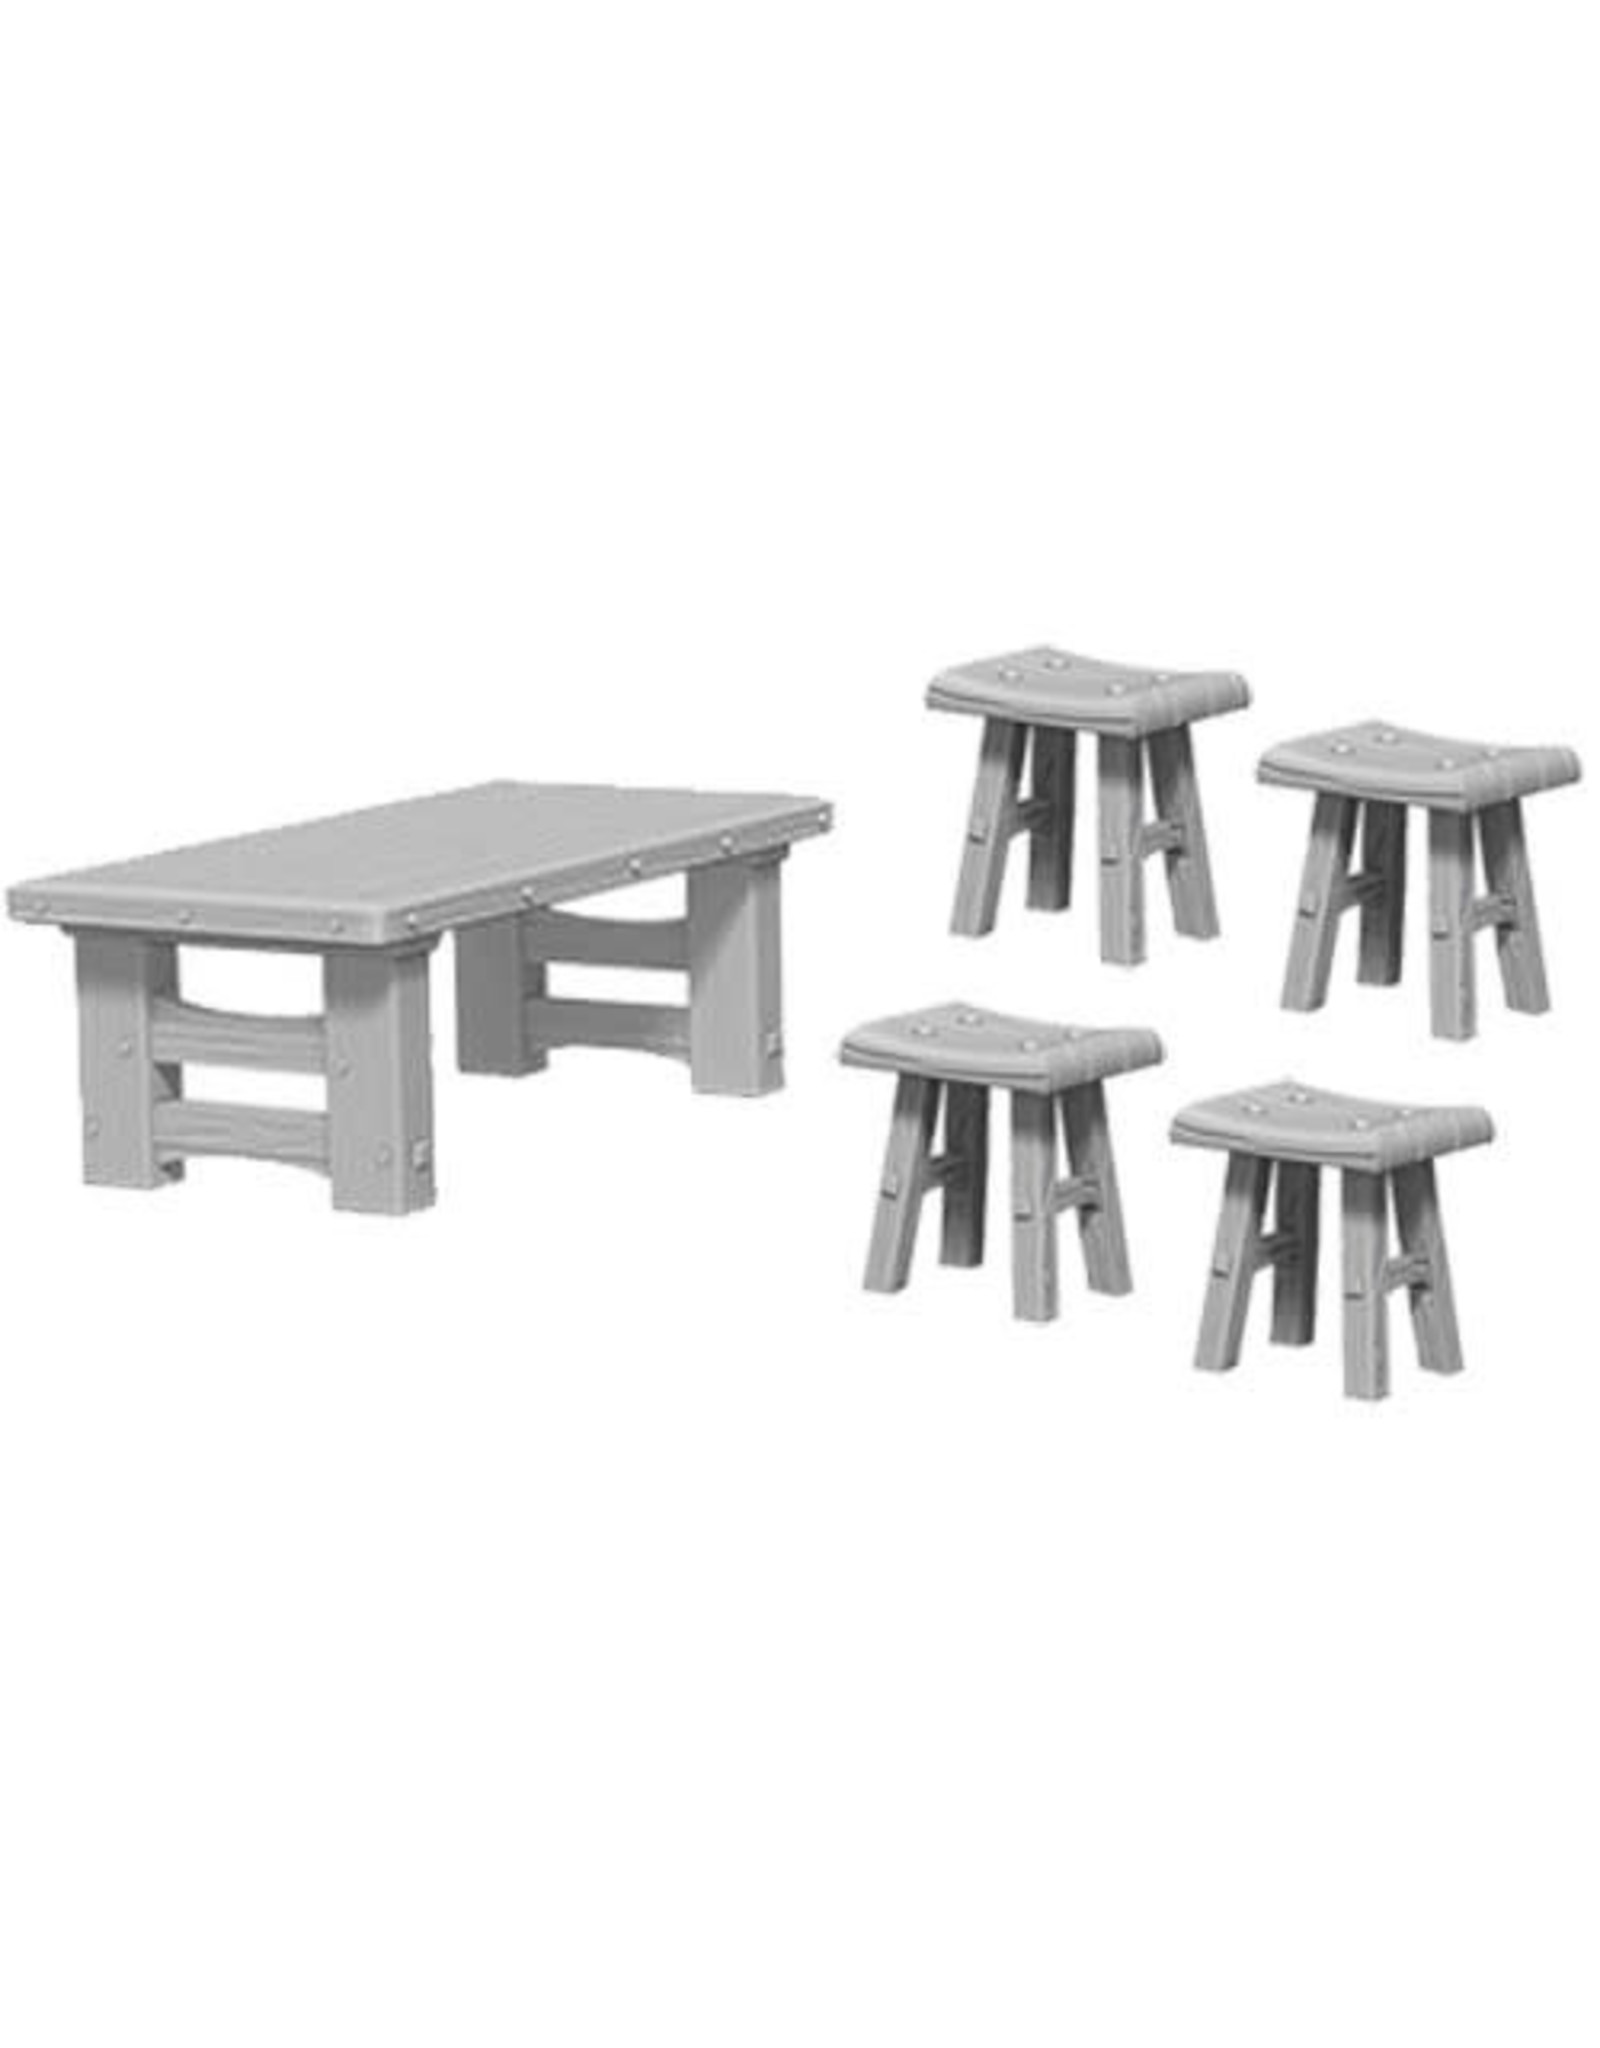 D&D Unpainted Minis: Wooden Table & Stools